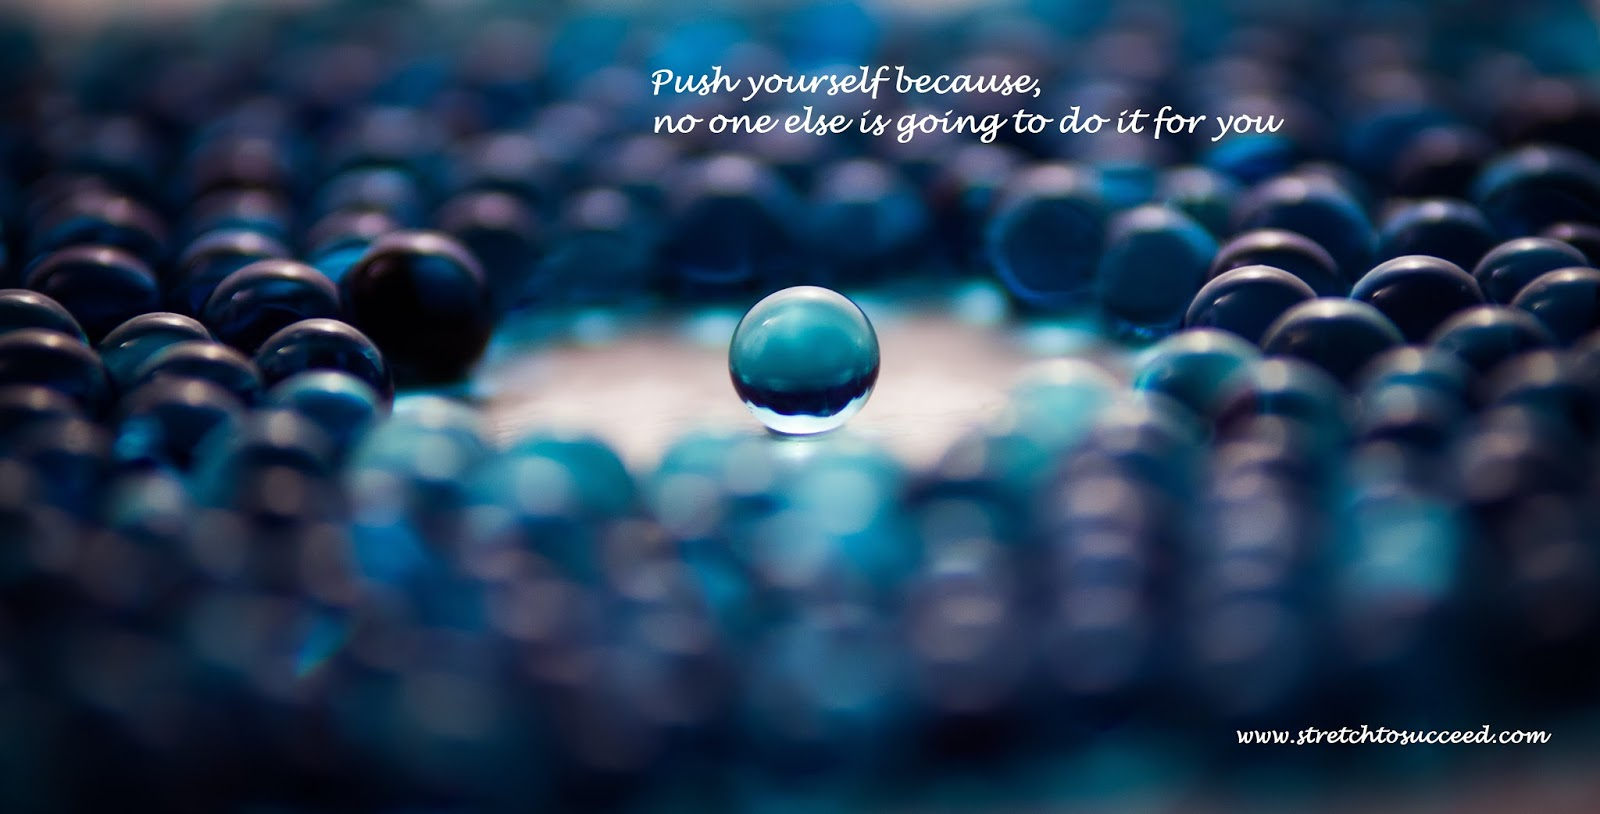 Stretch To Succeed Push Yourself Because No One Else Is Going To